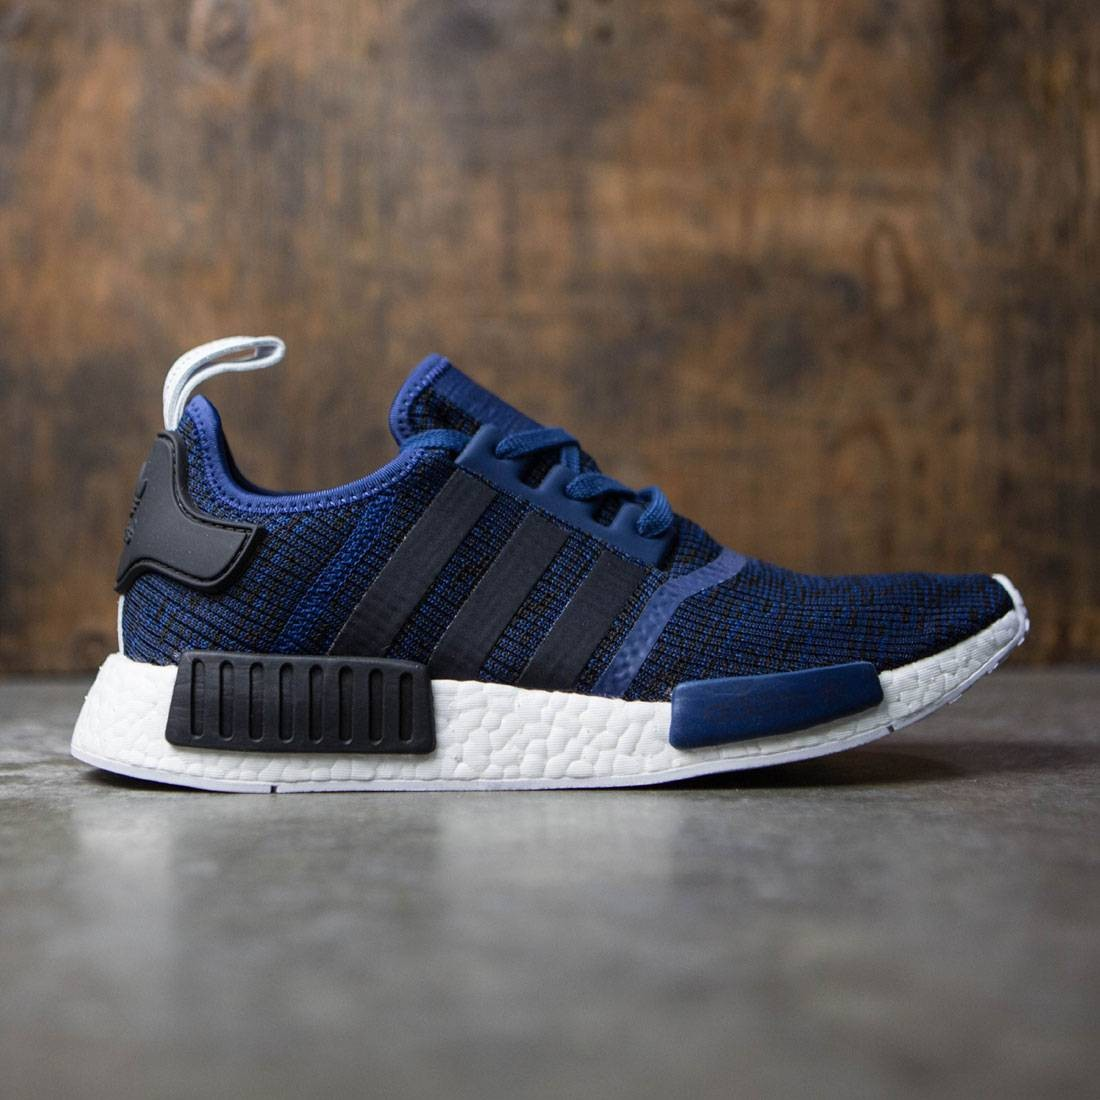 Adidas Men Nmd R1 Blue Mystery Blue Core Black Collegiate Navy